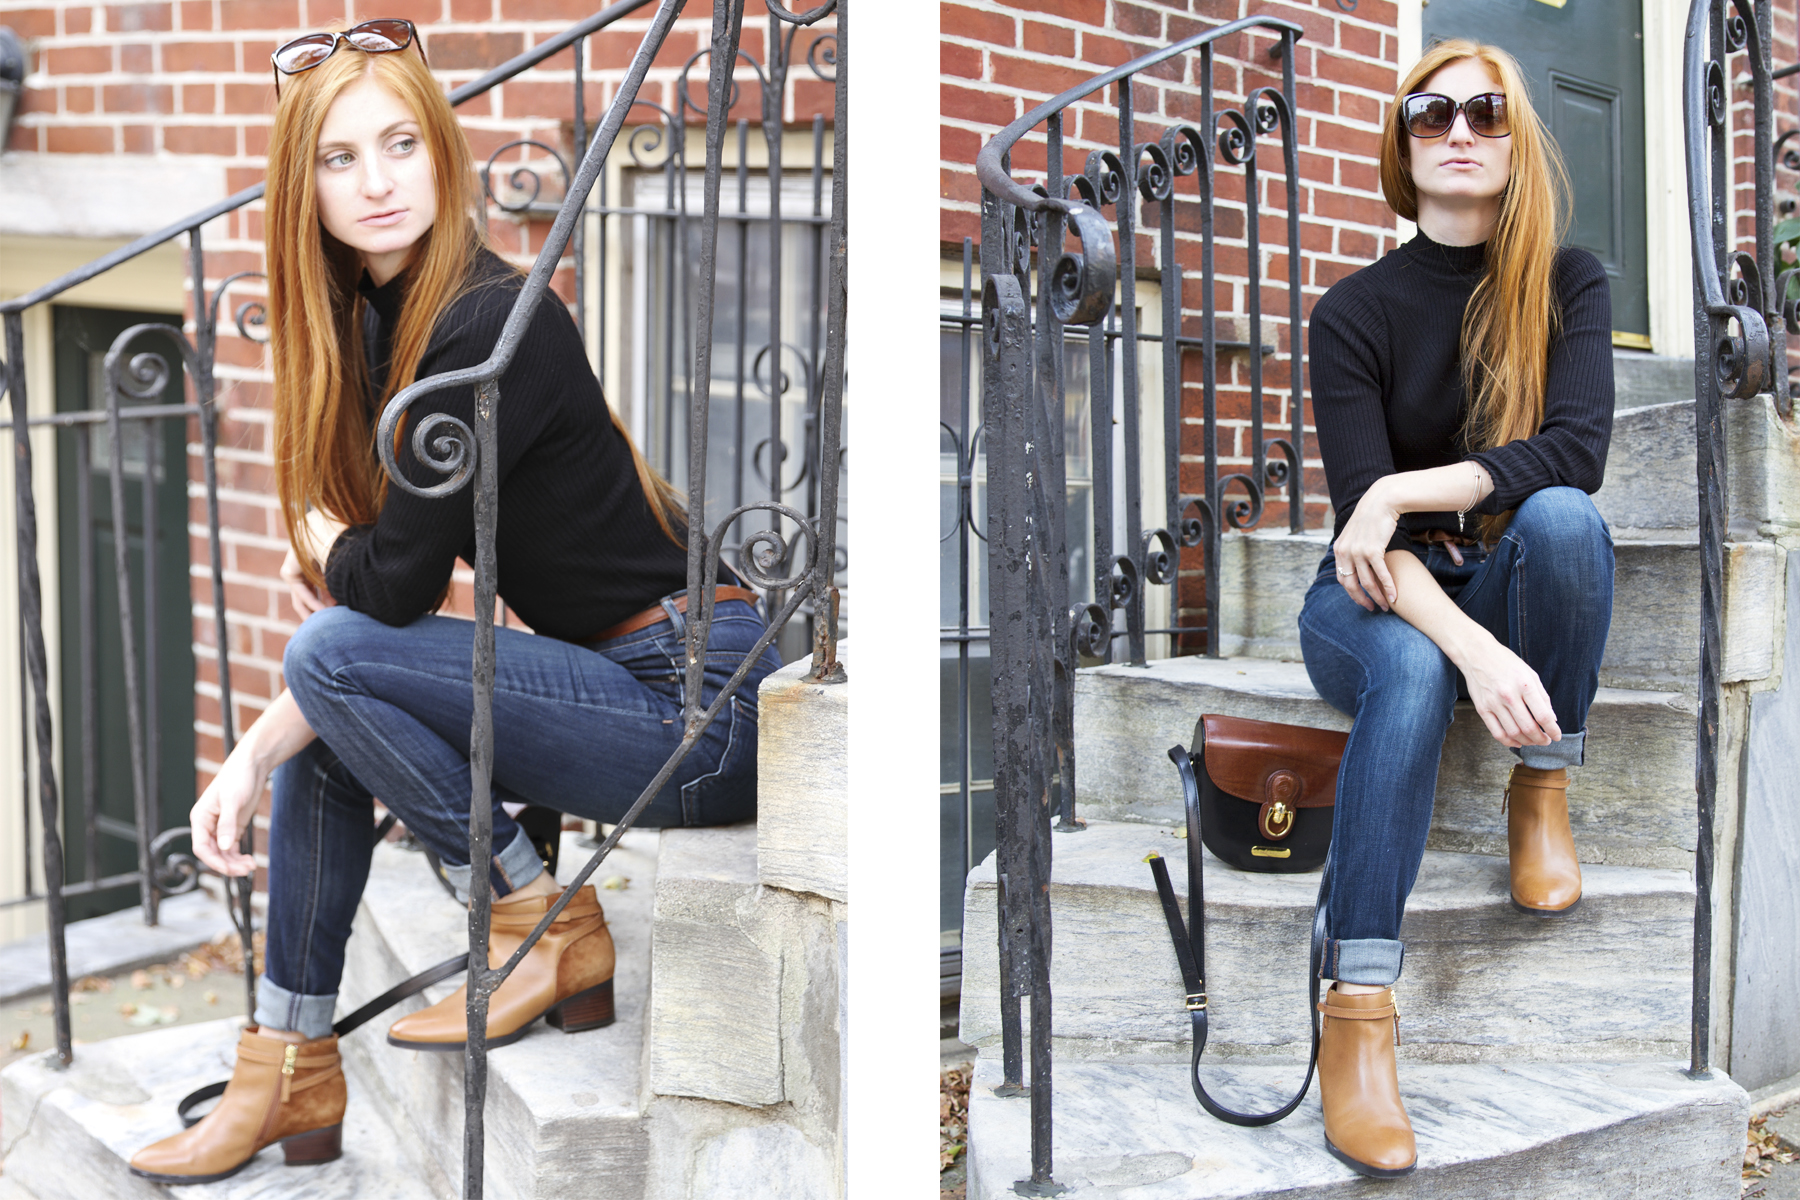 Redhead girl sitting on steps in black shirt and jeans